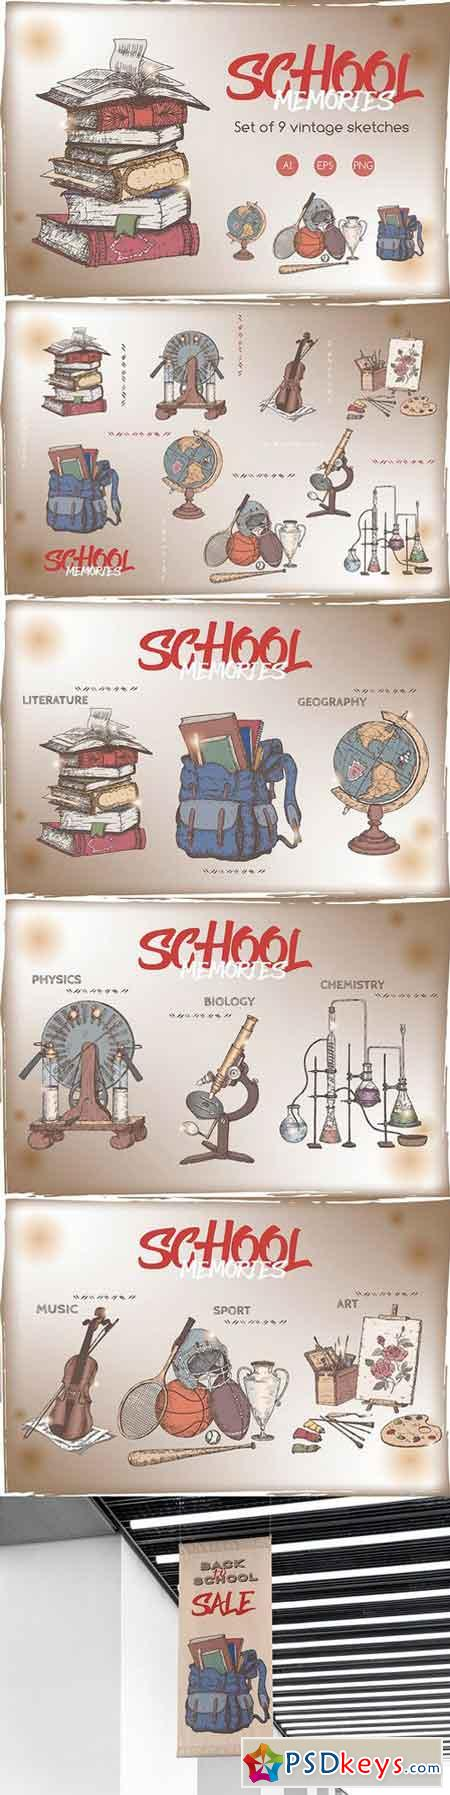 School memories vintage sketch set 2544333